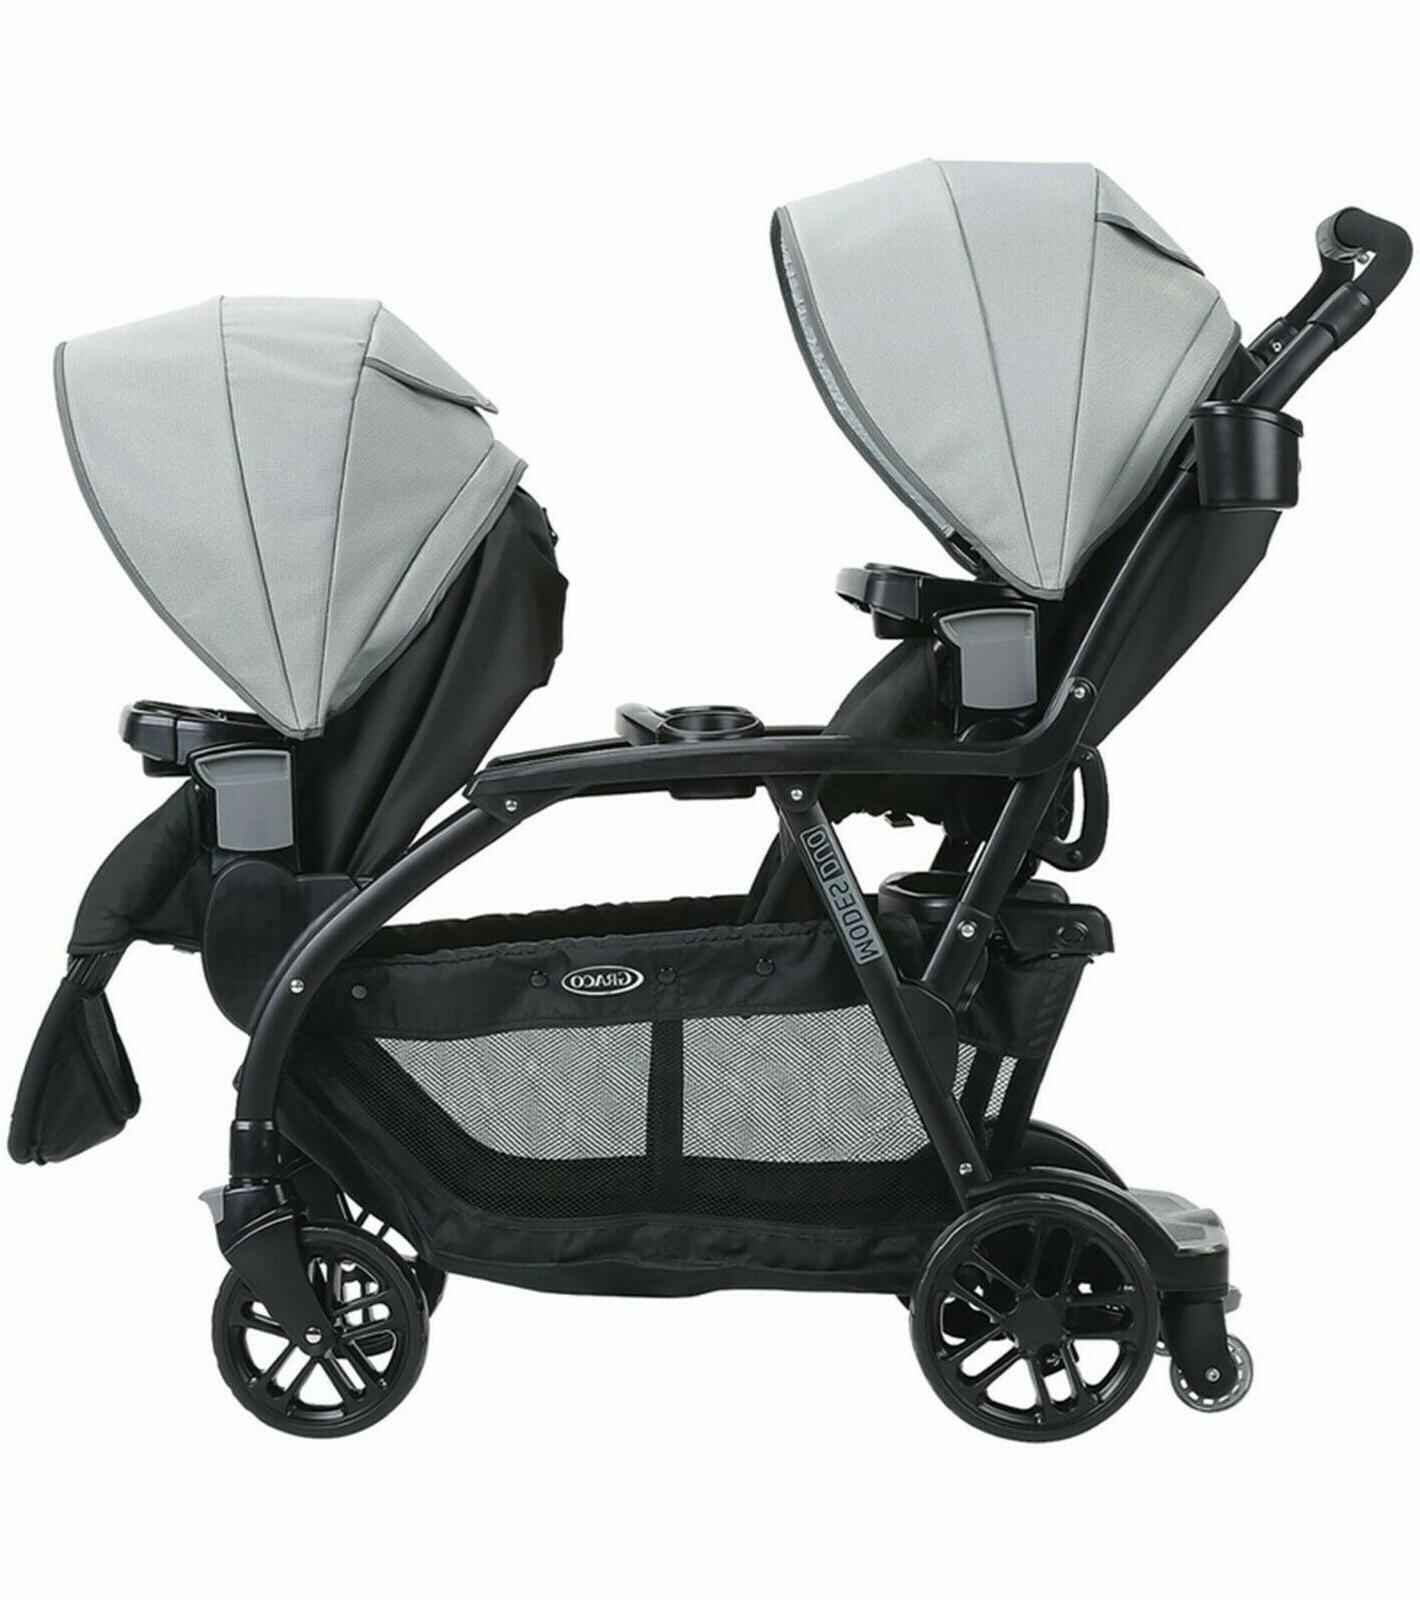 Graco Double Stroller Baby Sphere